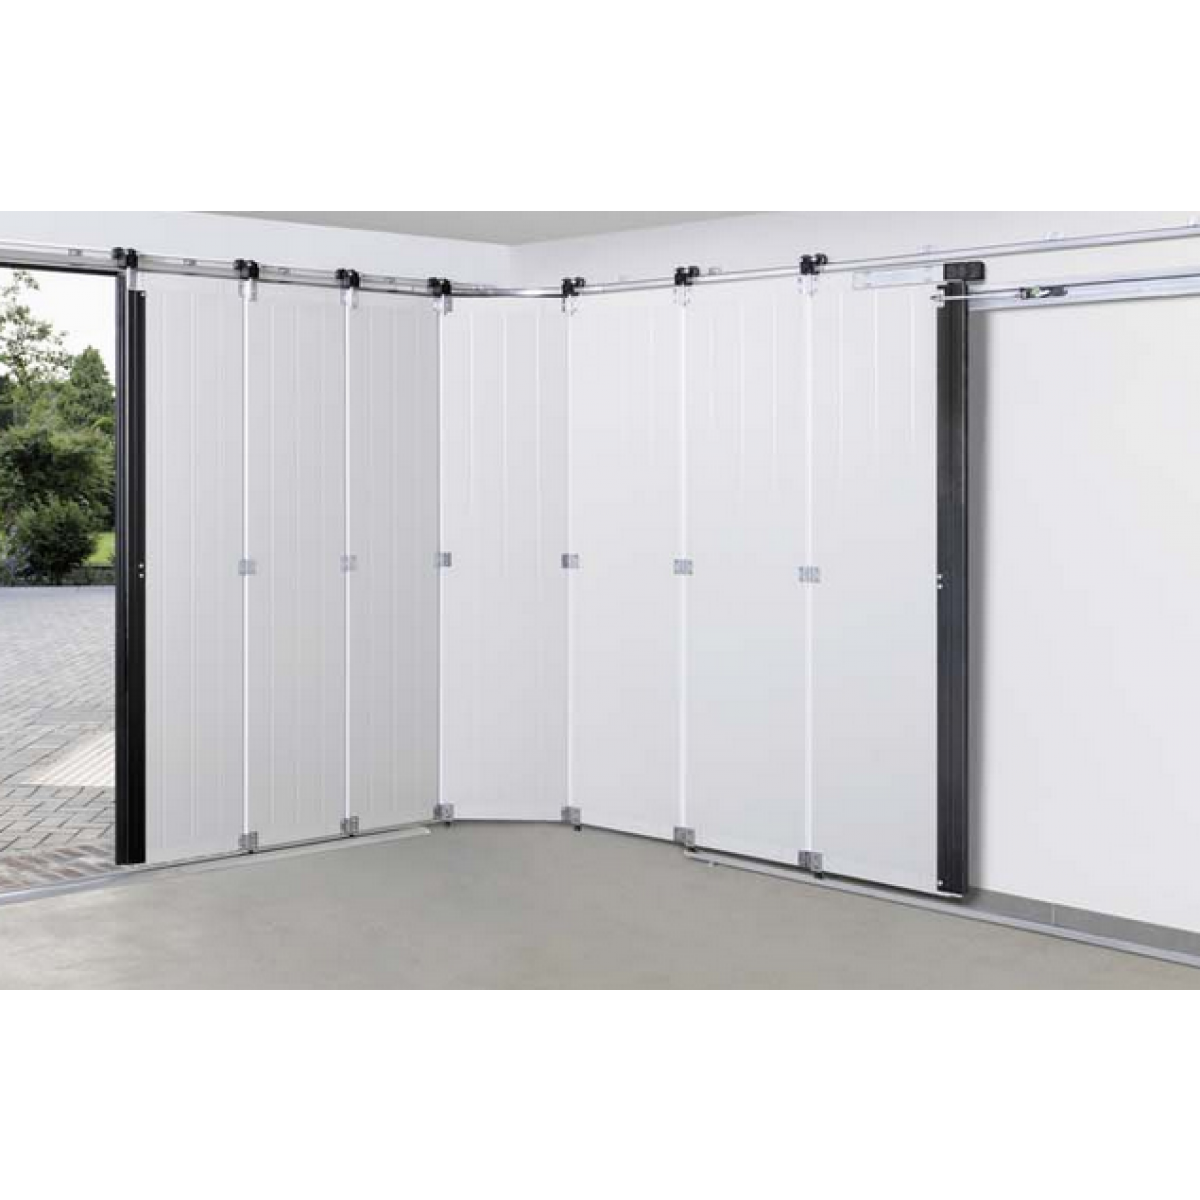 Porte lat rale de garage hst hormann portes de parking for Porte de garage 5m hormann